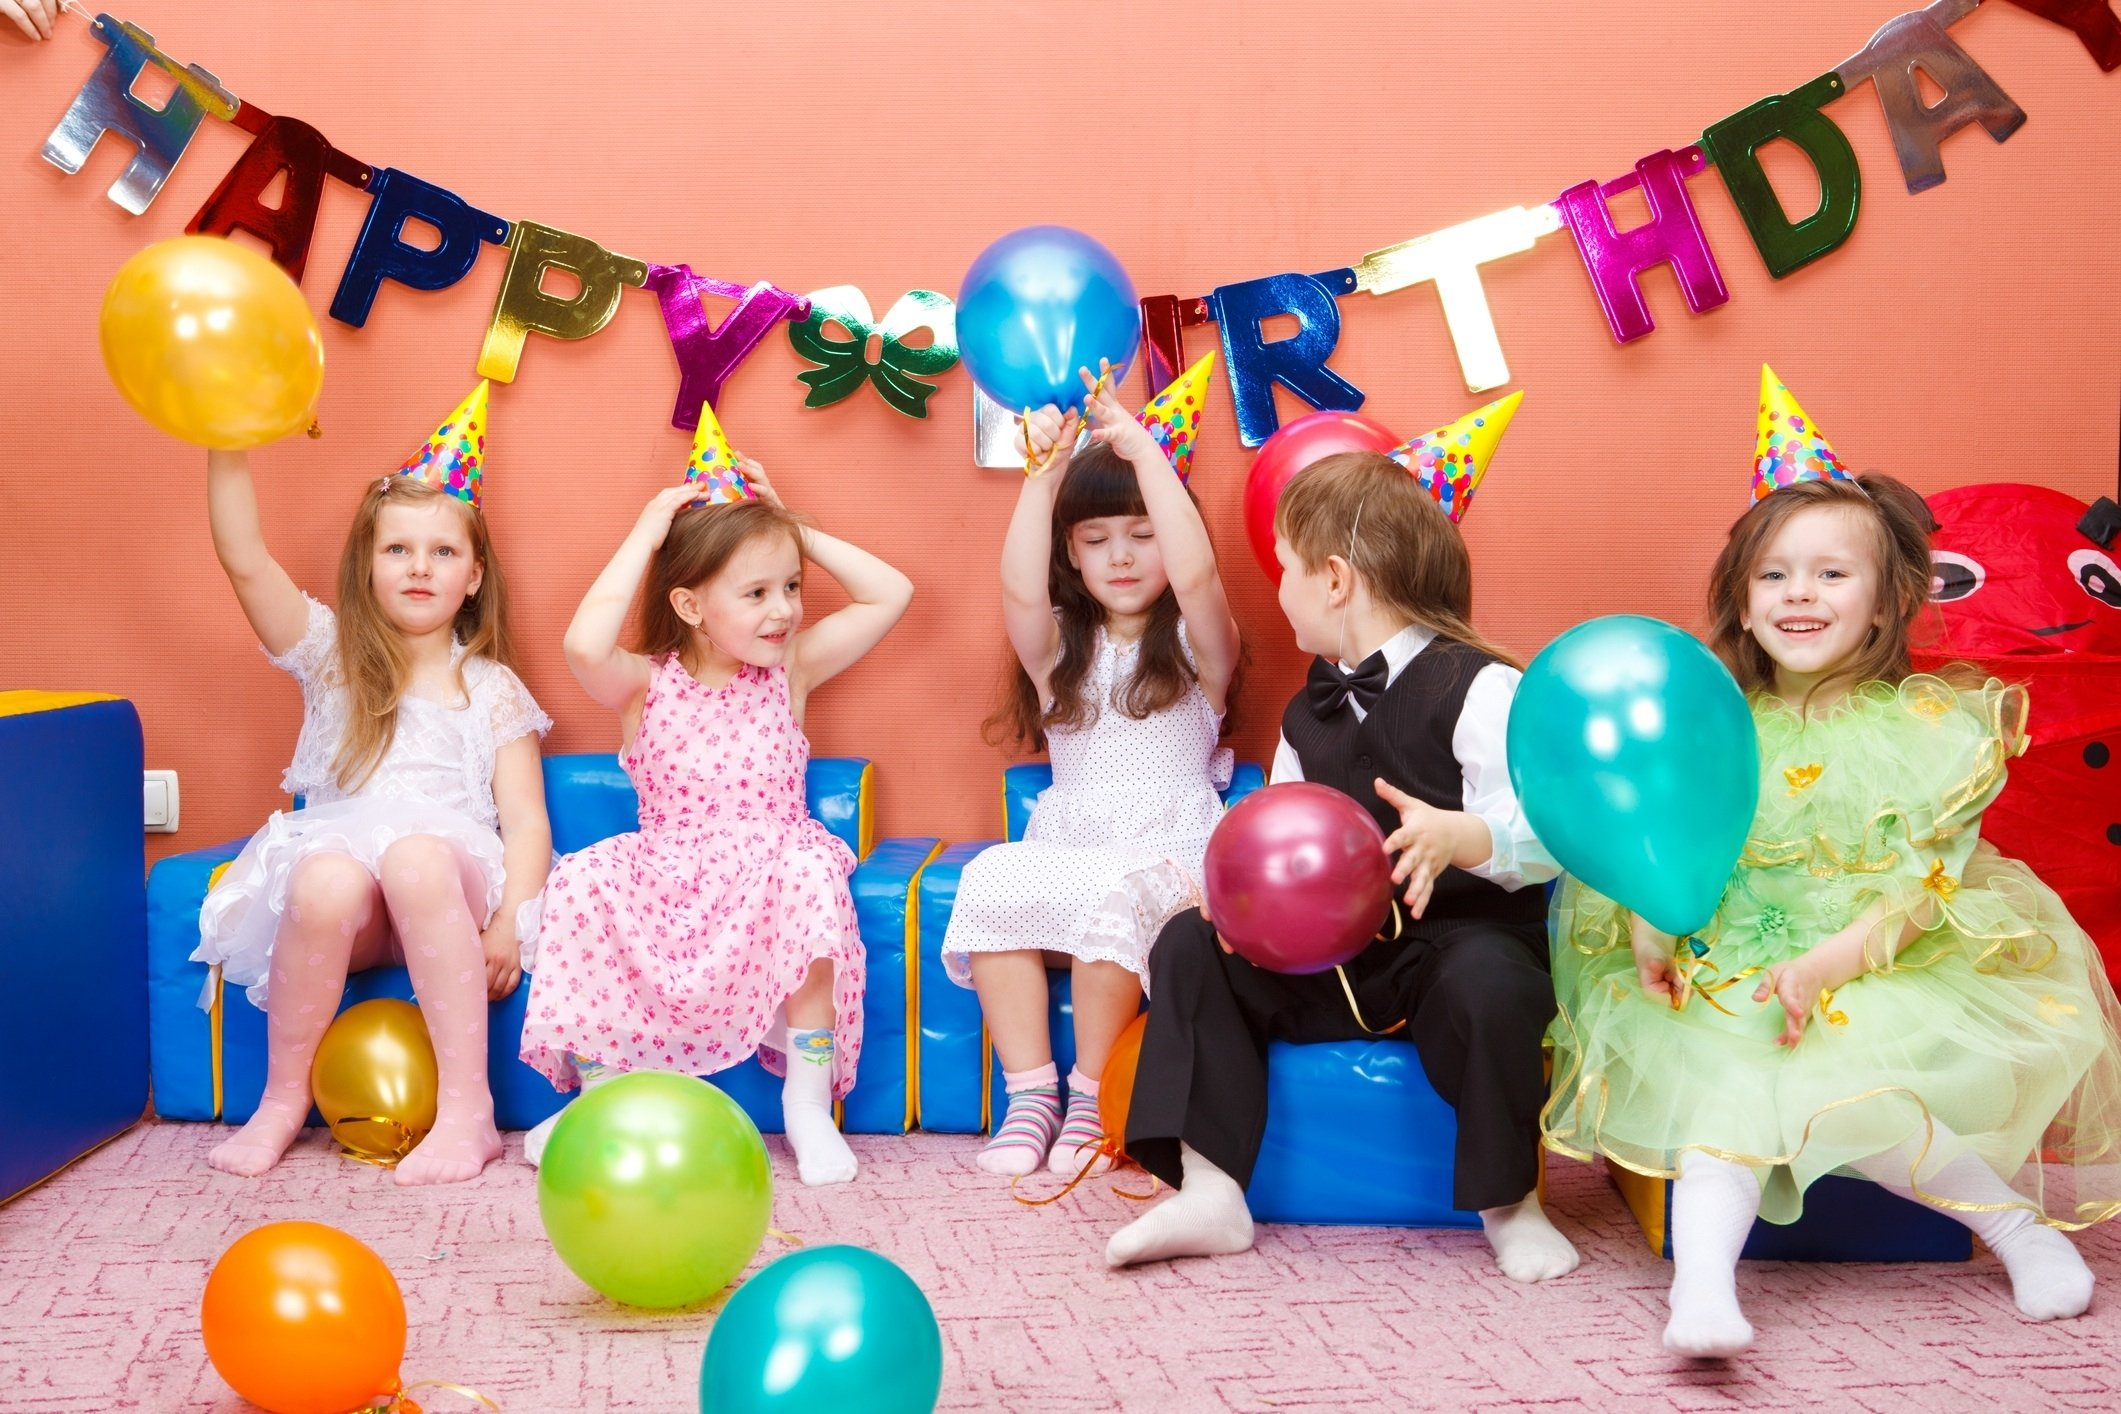 10 Cute 11 Year Old Birthday Ideas 45 awesome 11 12 year old birthday party ideas birthday inspire 19 2020